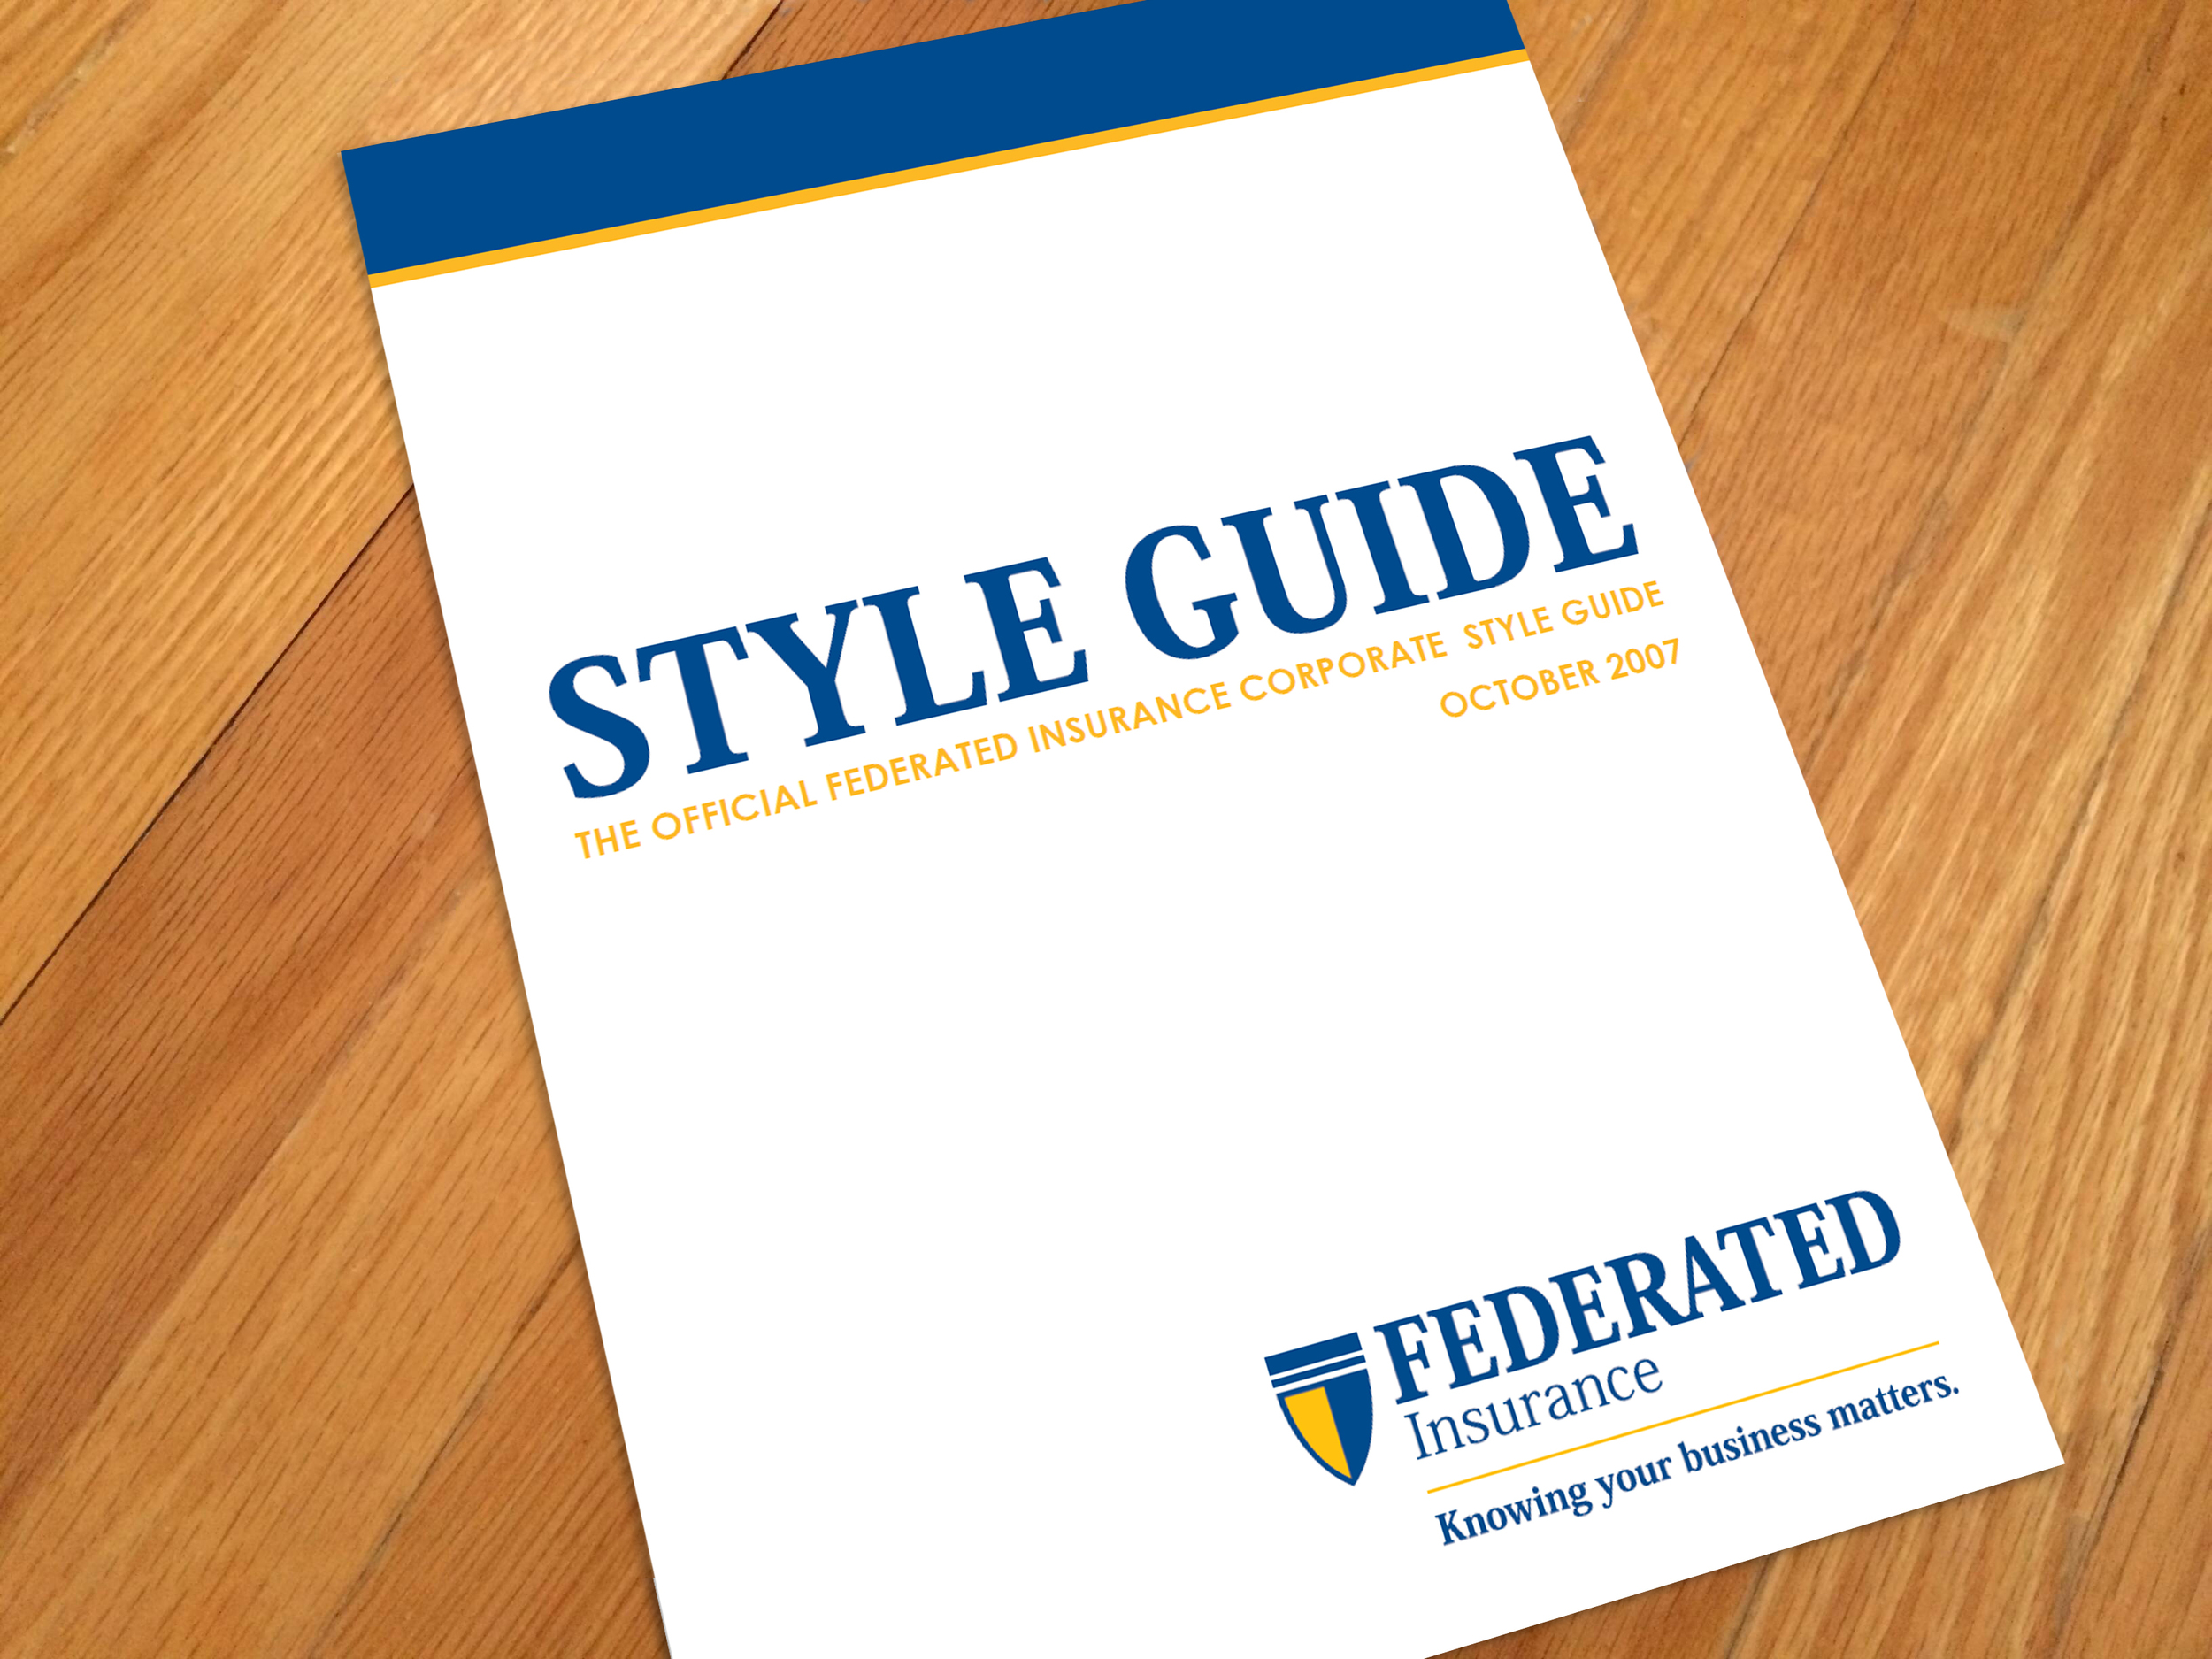 Style Guide: Federated Insurance